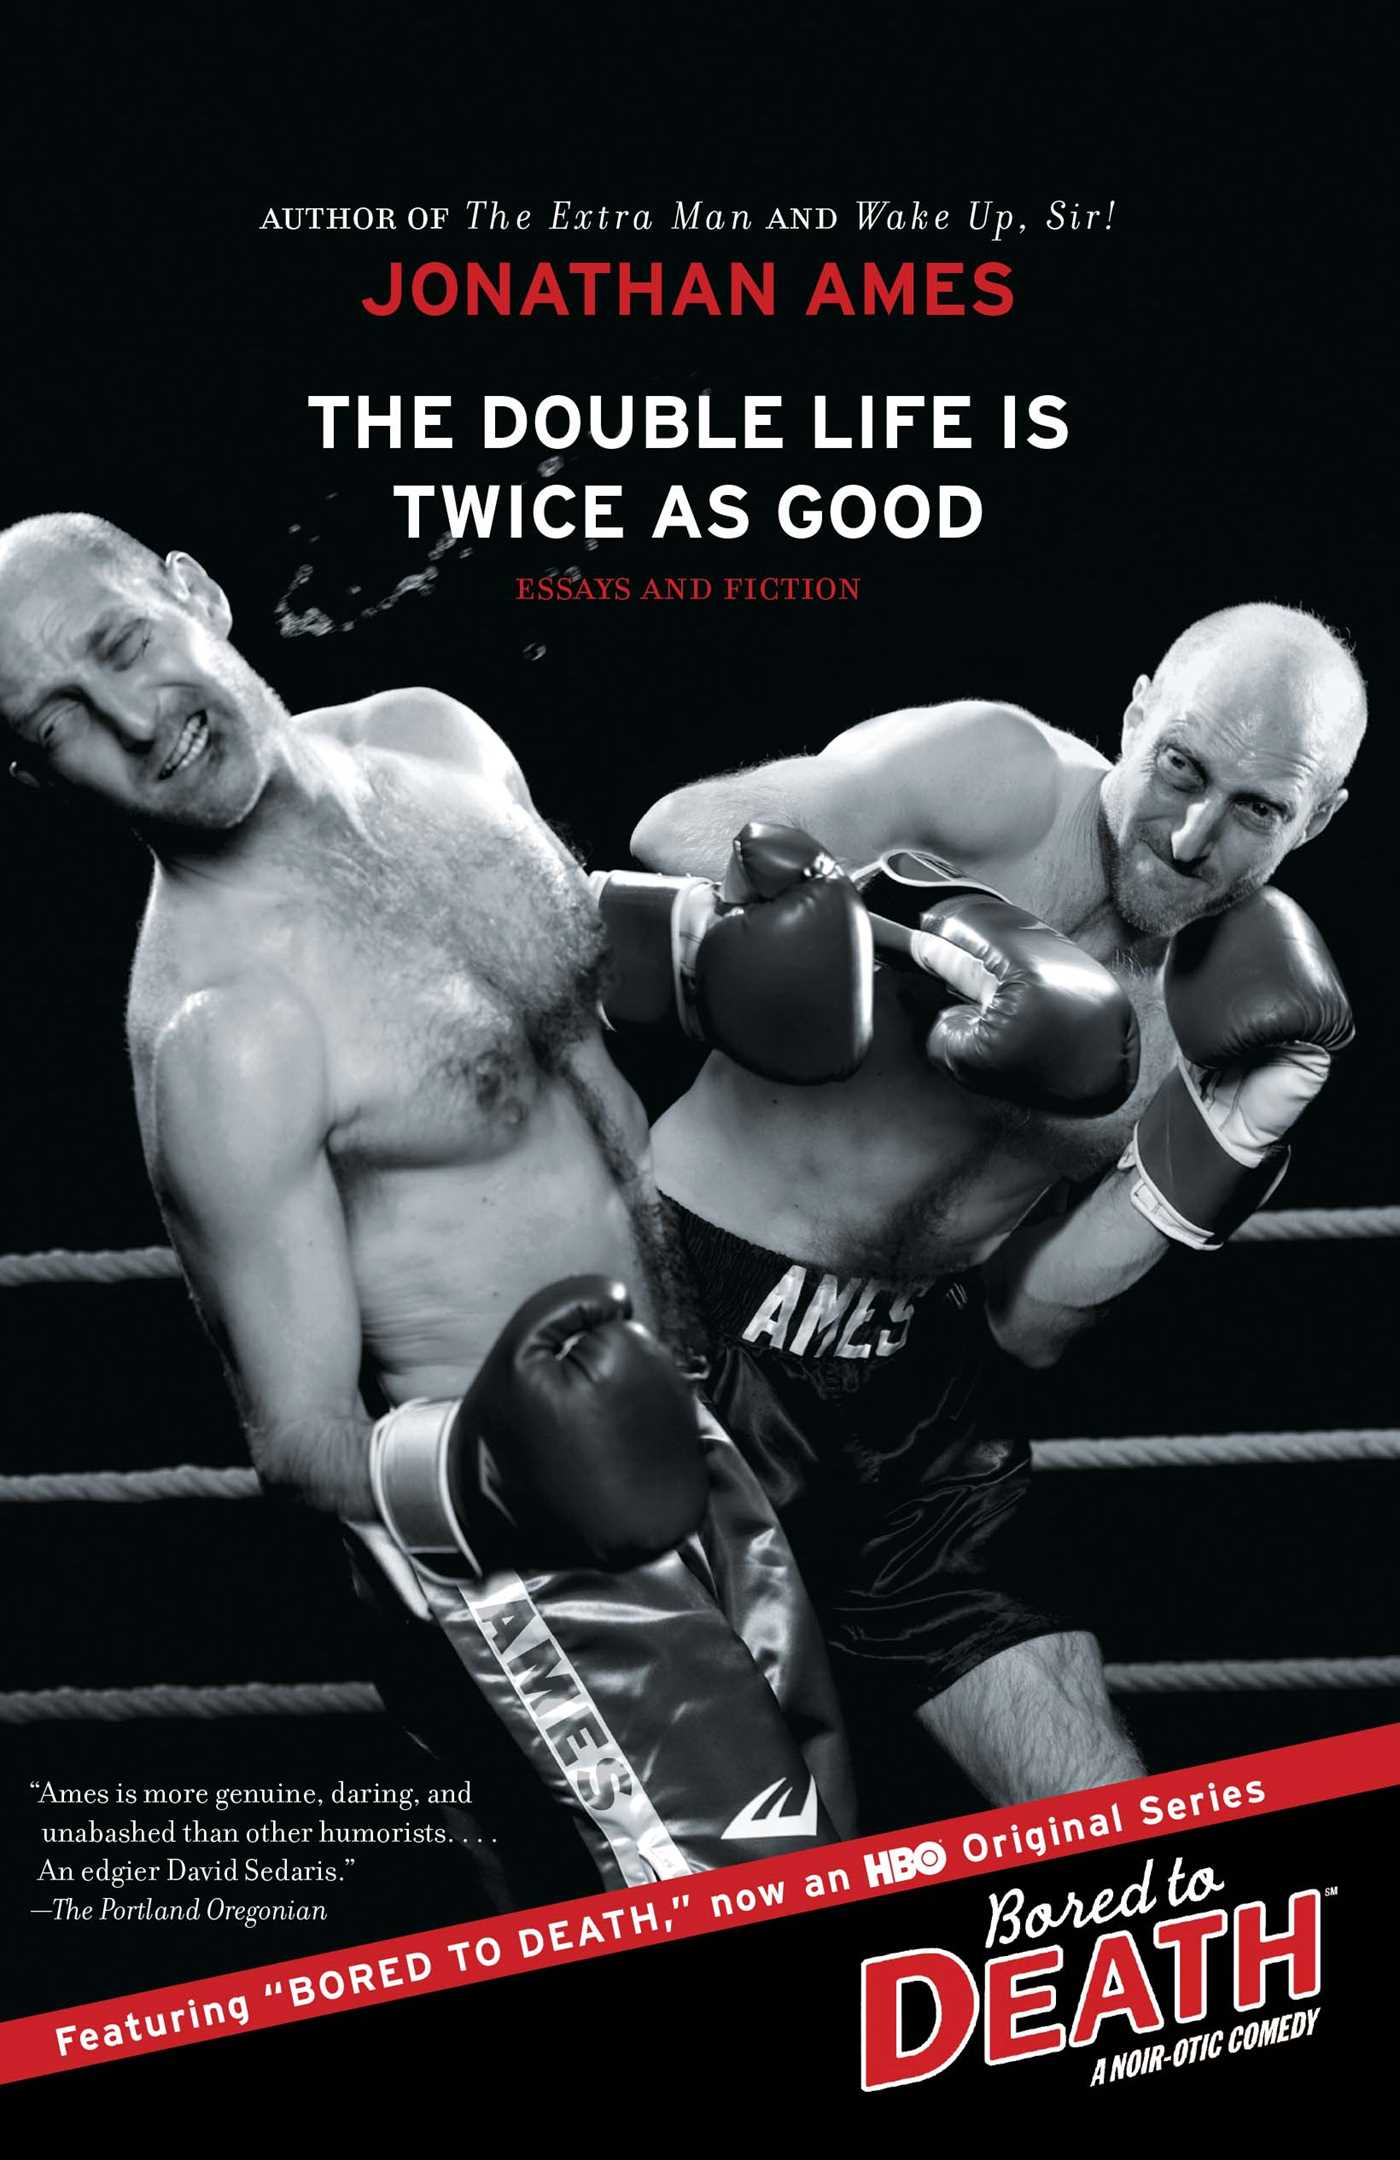 the double life is twice as good book by jonathan ames essays and fiction